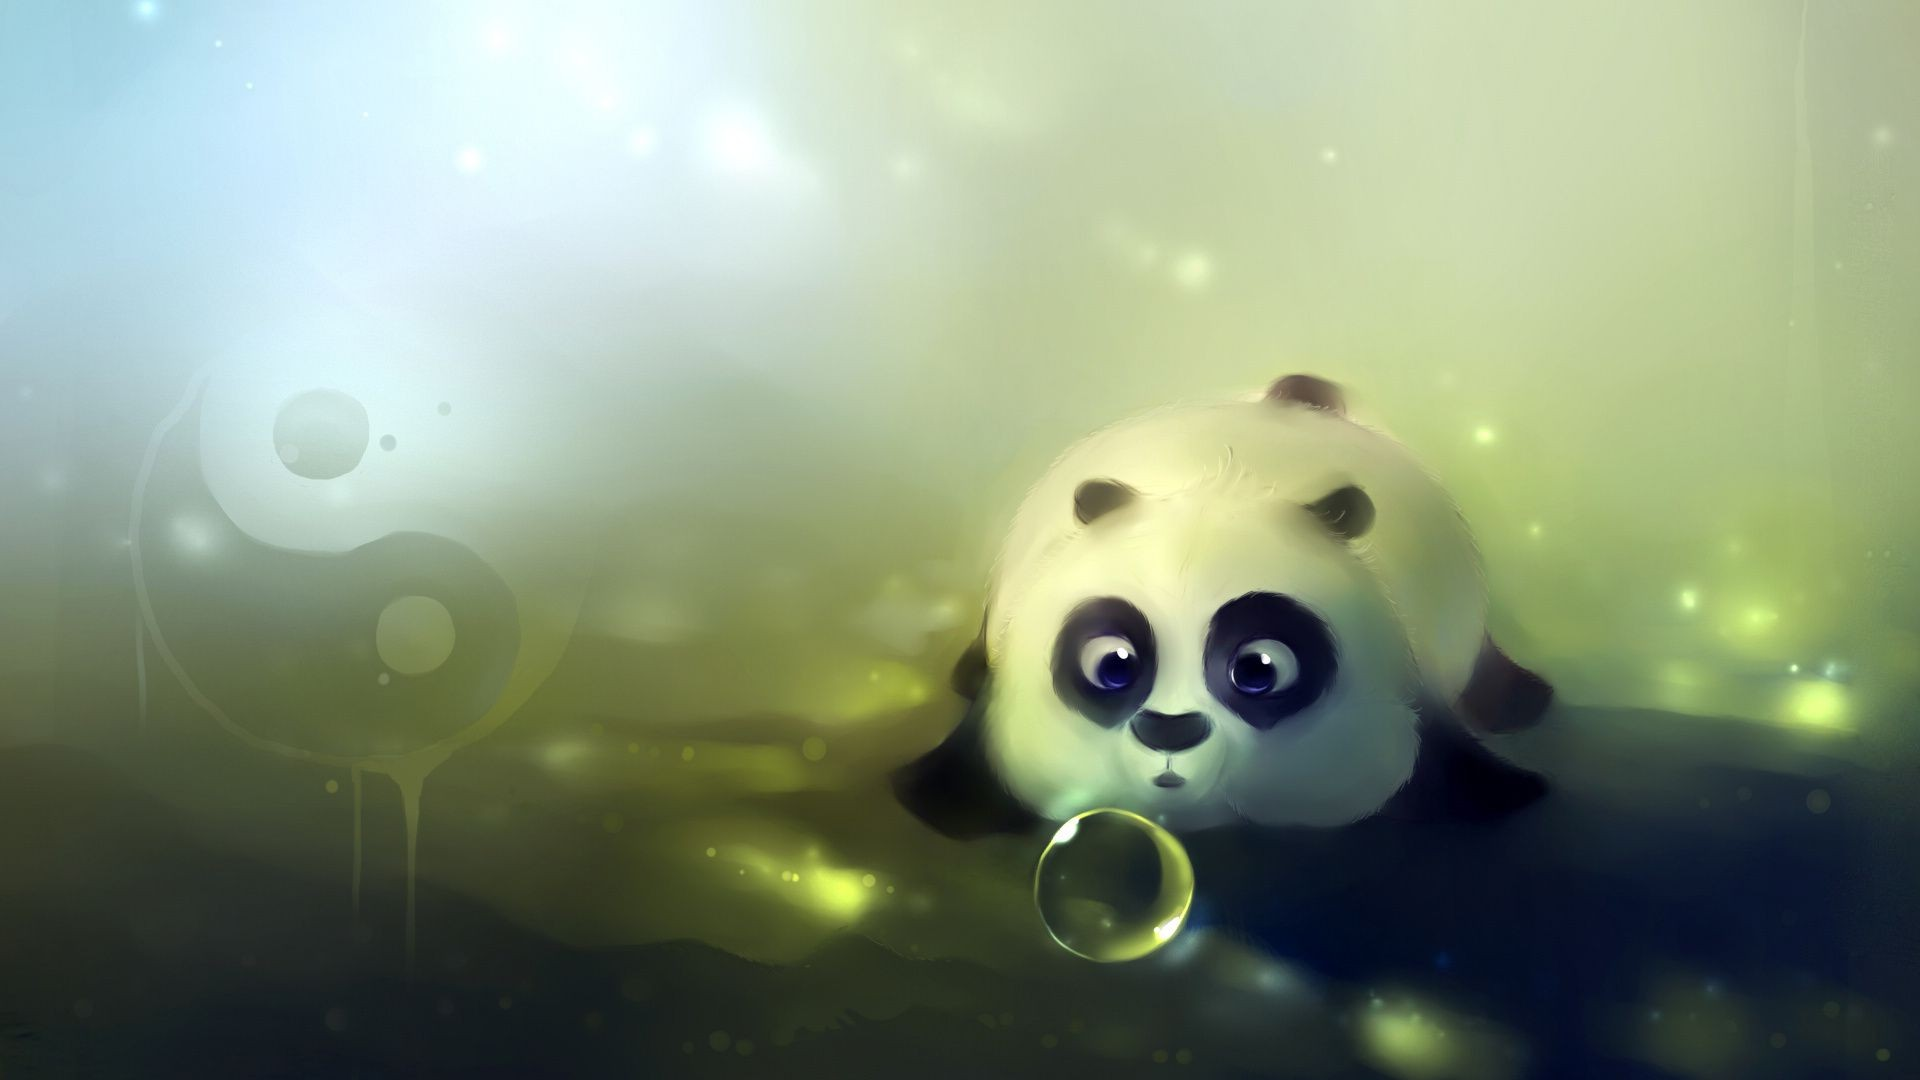 the ball bear bear Yin-Yang bubble Panda